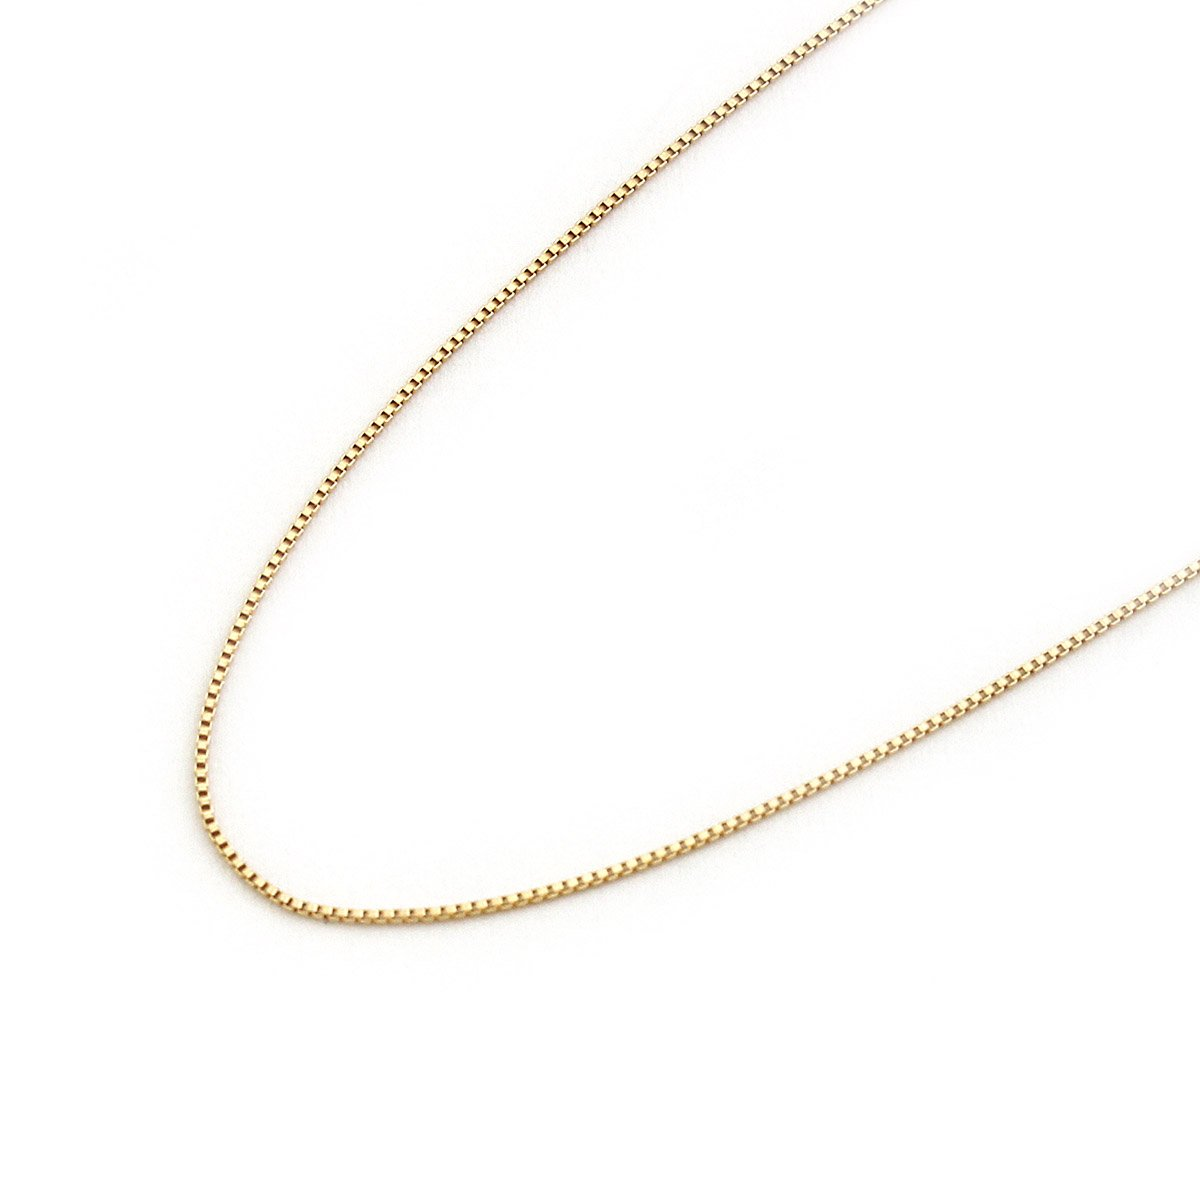 14k Solid Yellow, White or Rose Gold 0.55mm Box Chain Necklace, 13 15 16 18 20 22 13 Beauniq beauniq-8078